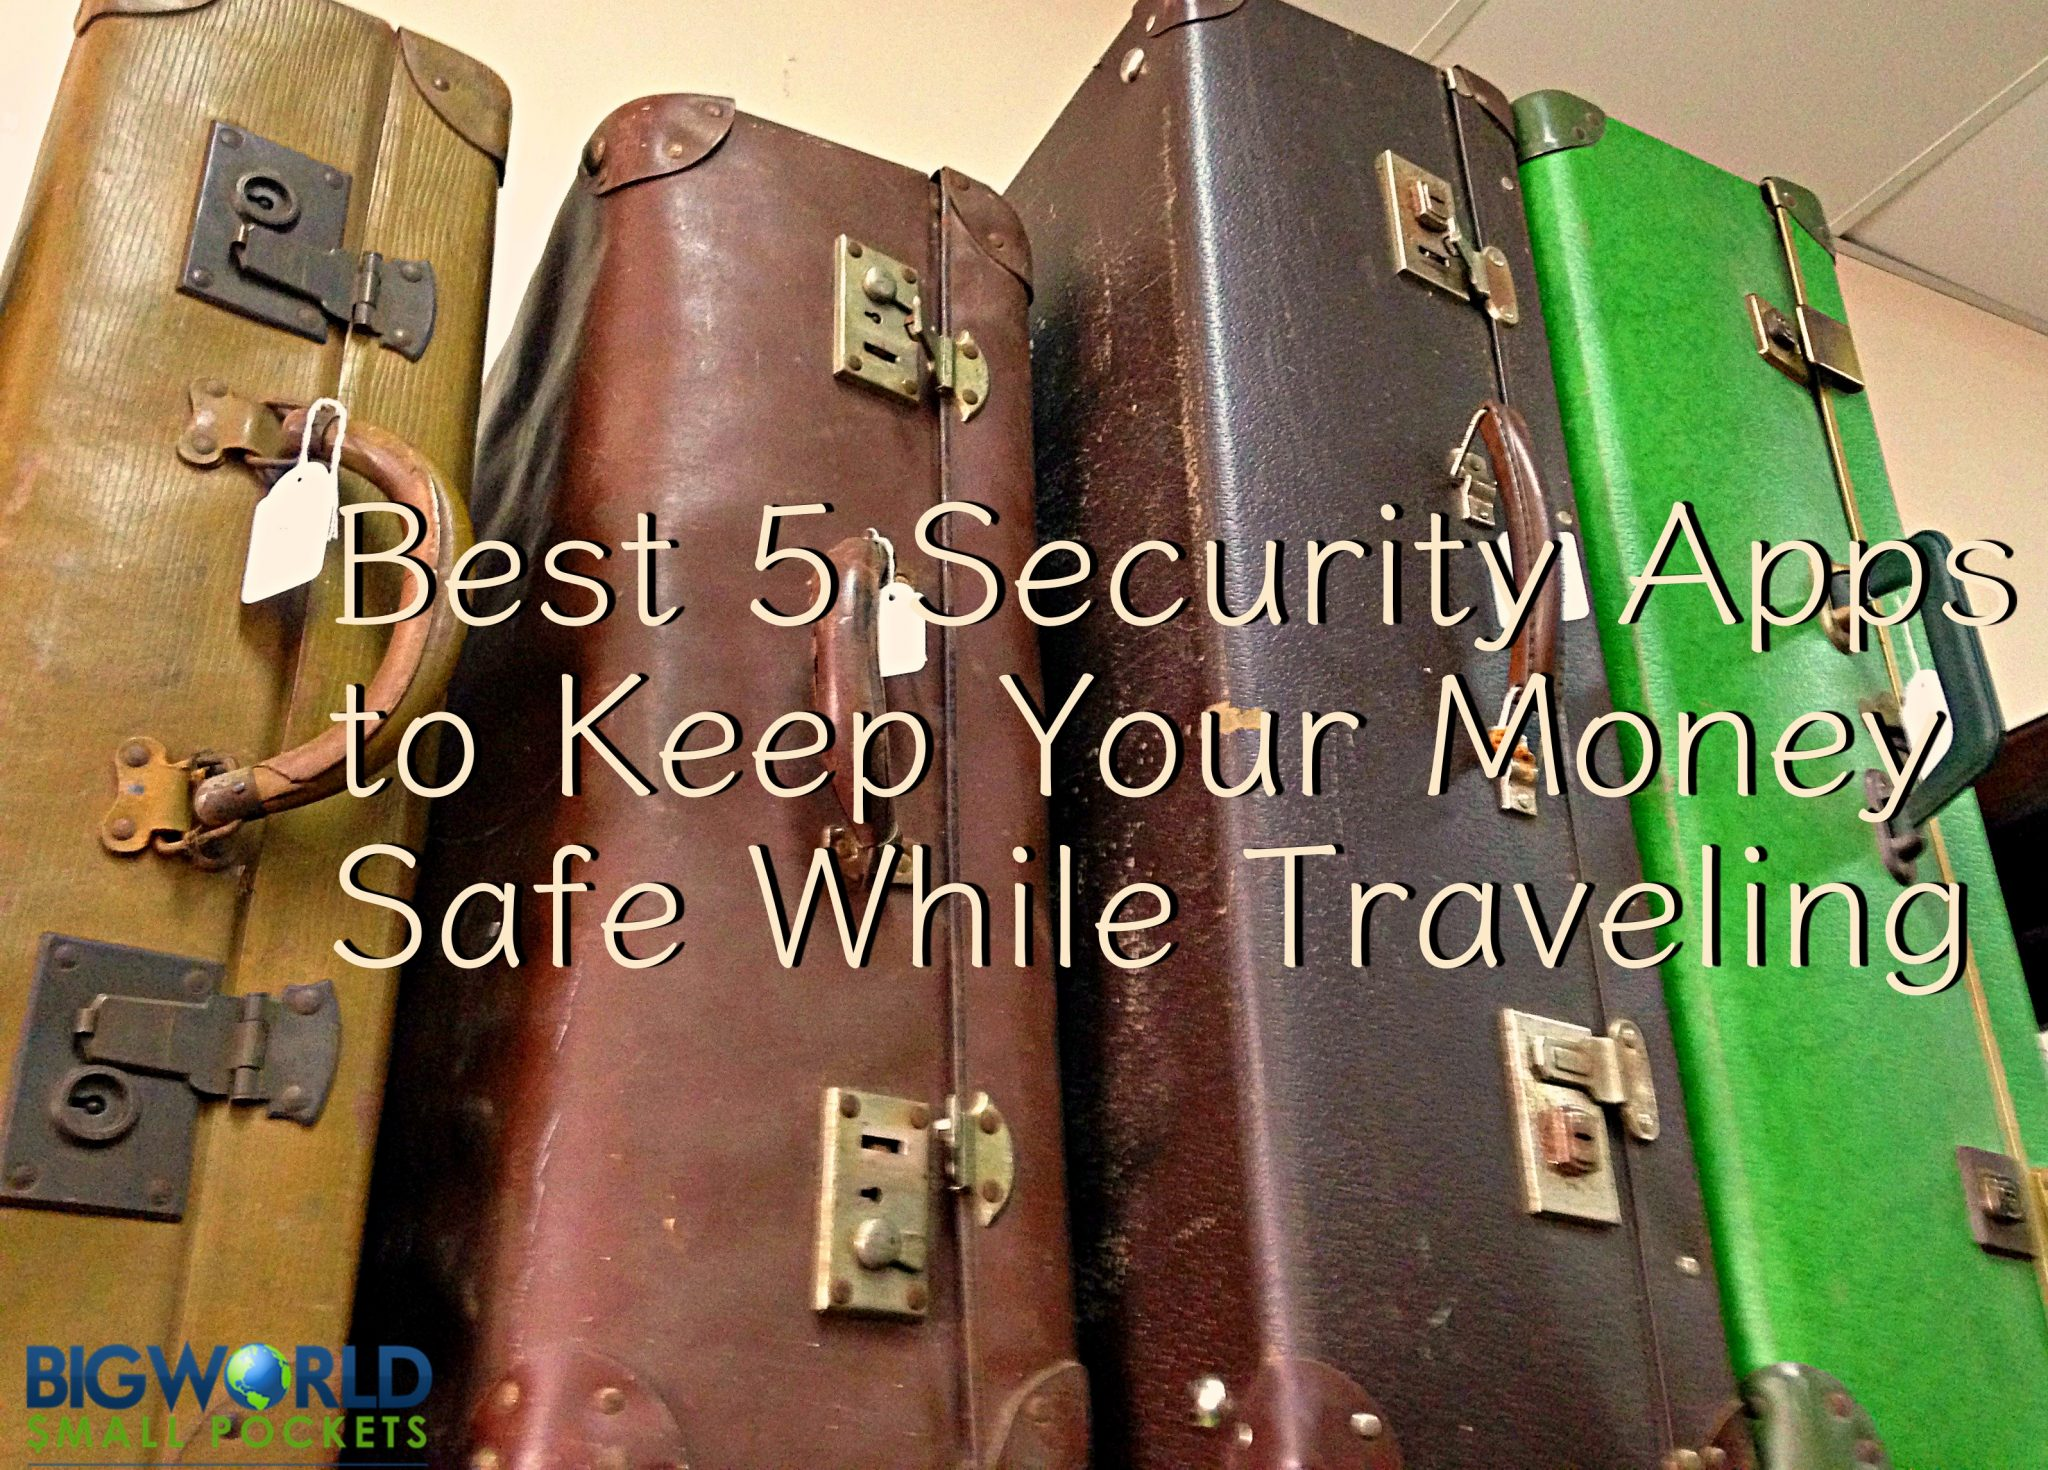 Security Apps for Travel